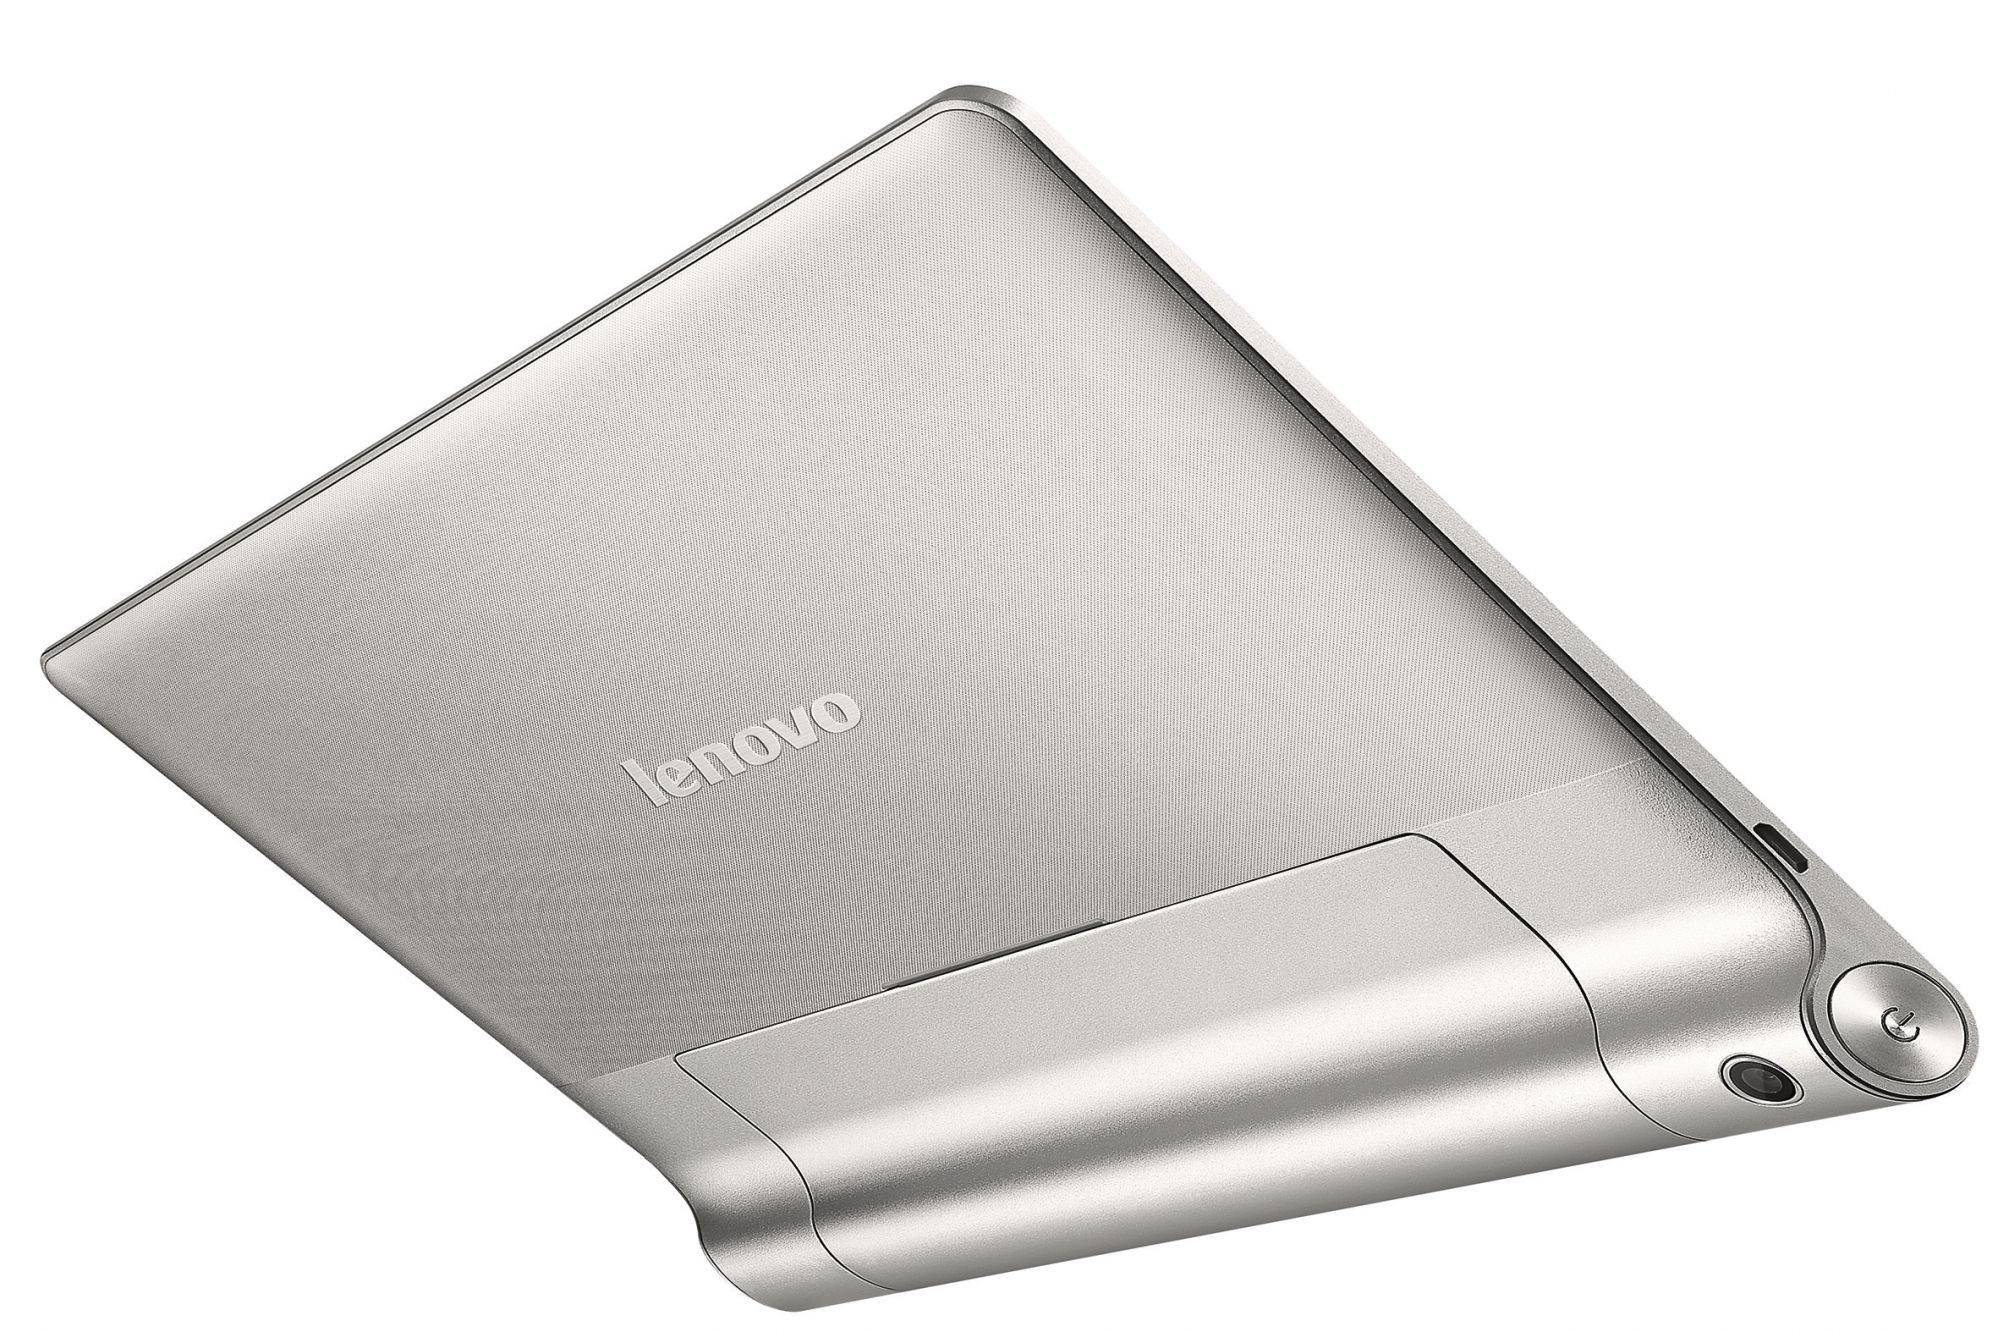 Lenovo ideapad b6000 f b8000 f android yoga tablets surface in europe